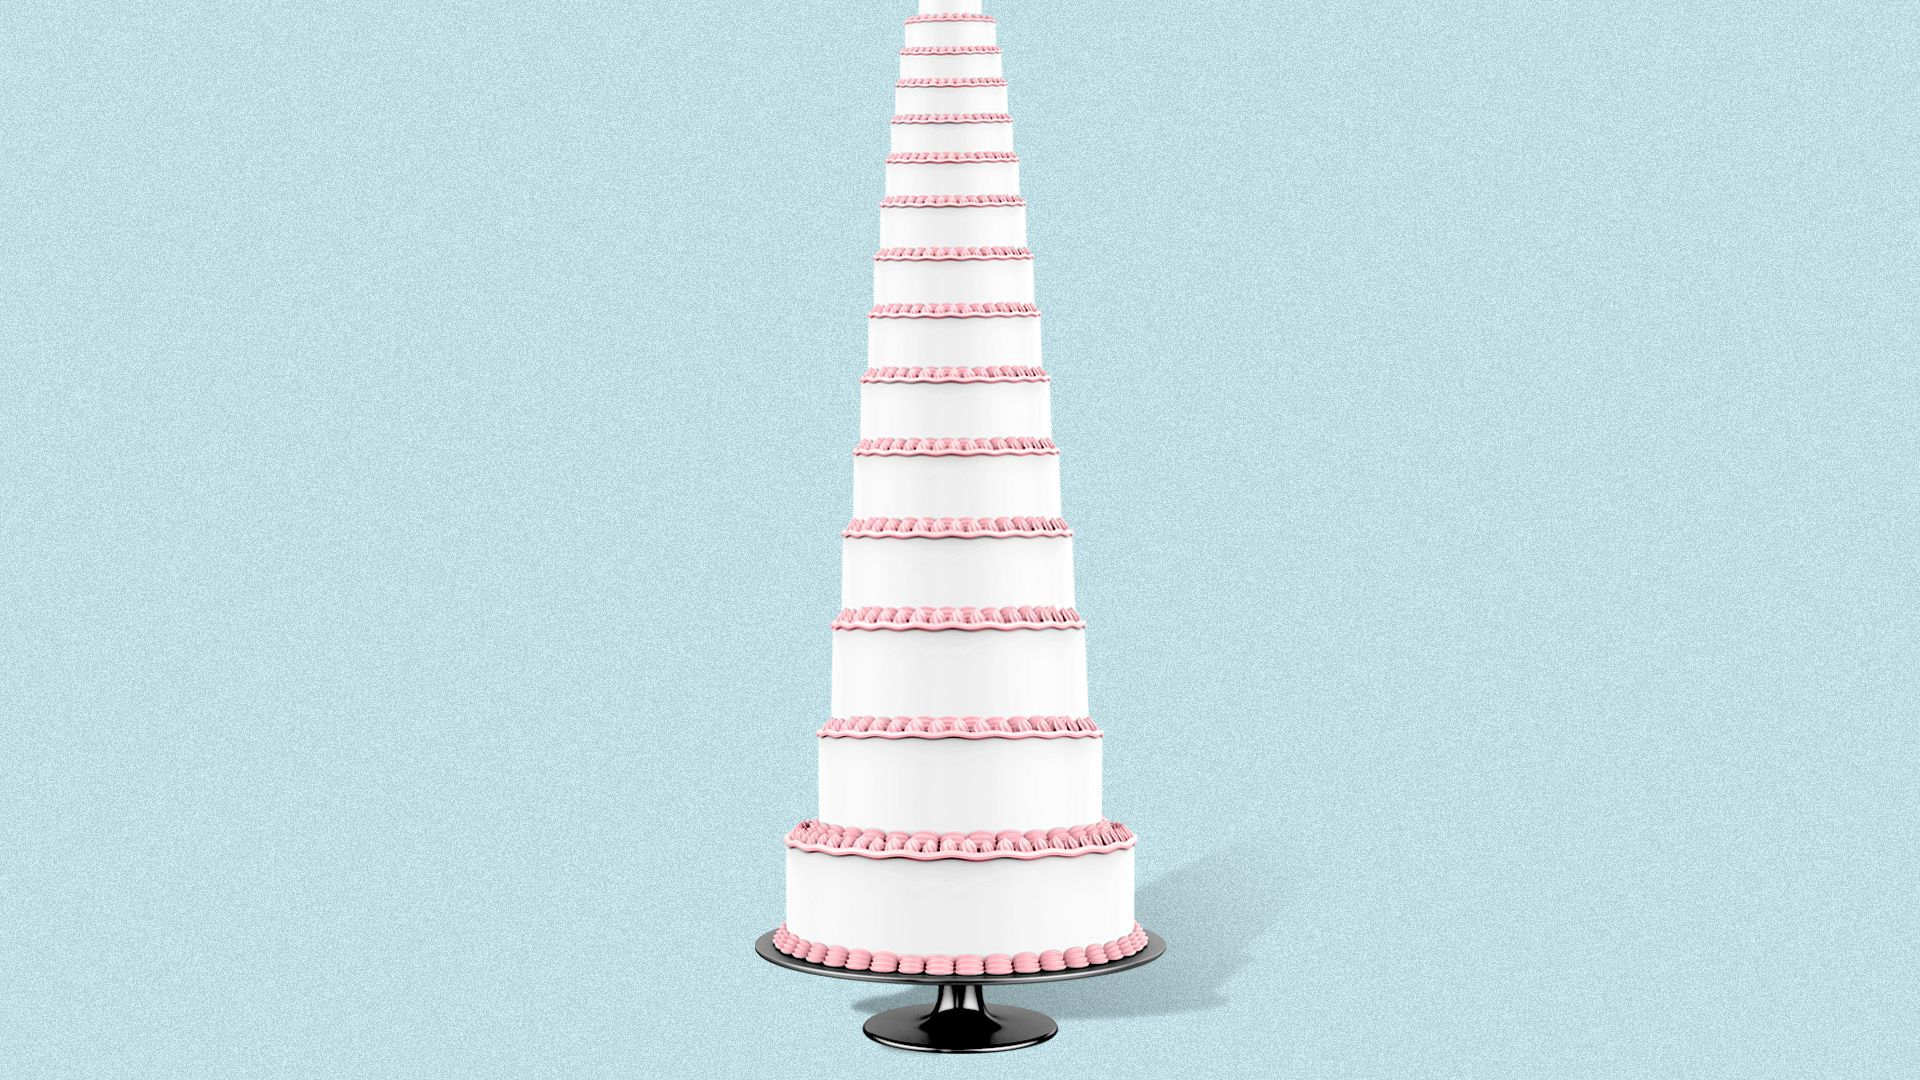 Illustration of a very tall wedding cake.